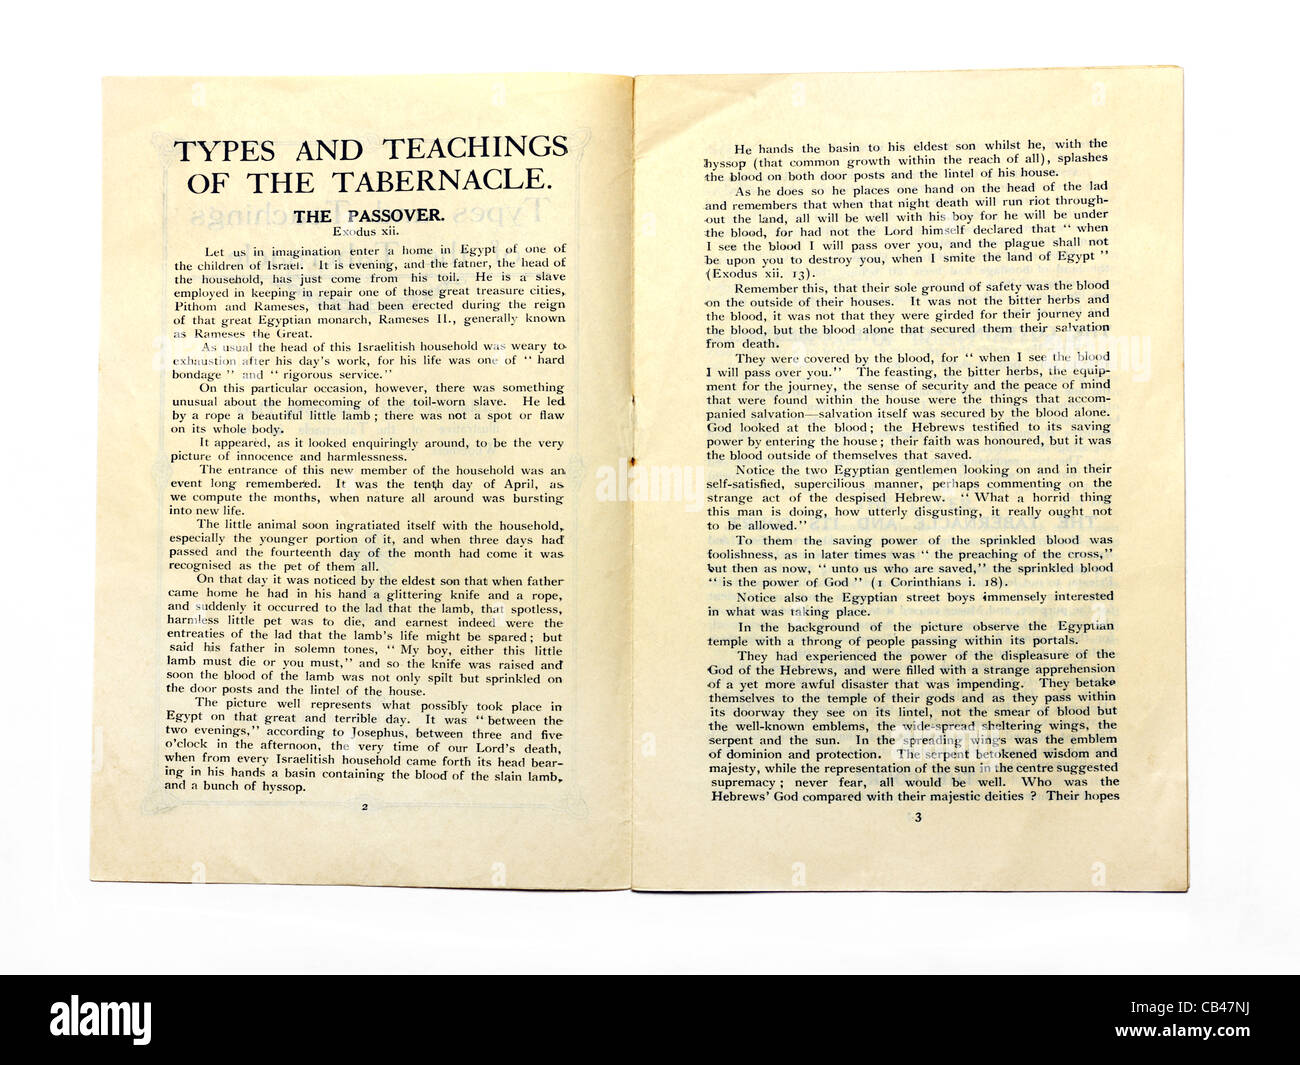 Old Booklet On The Types And Teachings Of The Tabernacle A Portable Sanctuary Constructed For Worship For The Jews - Stock Image